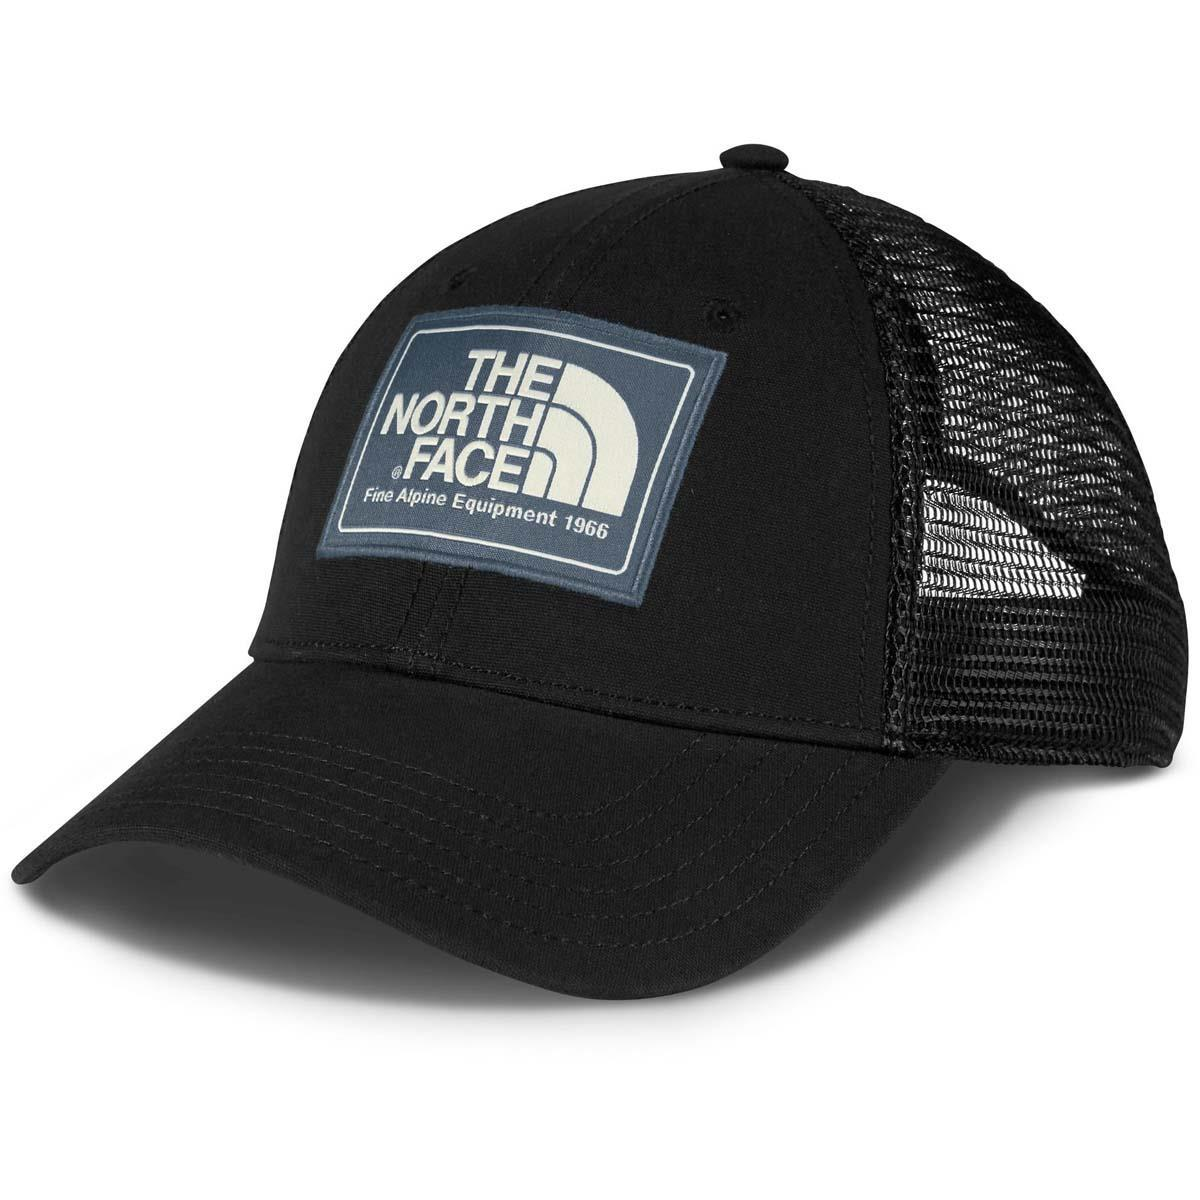 The North Face Mudder Trucker Hat. Loading zoom 499493a9ecb8